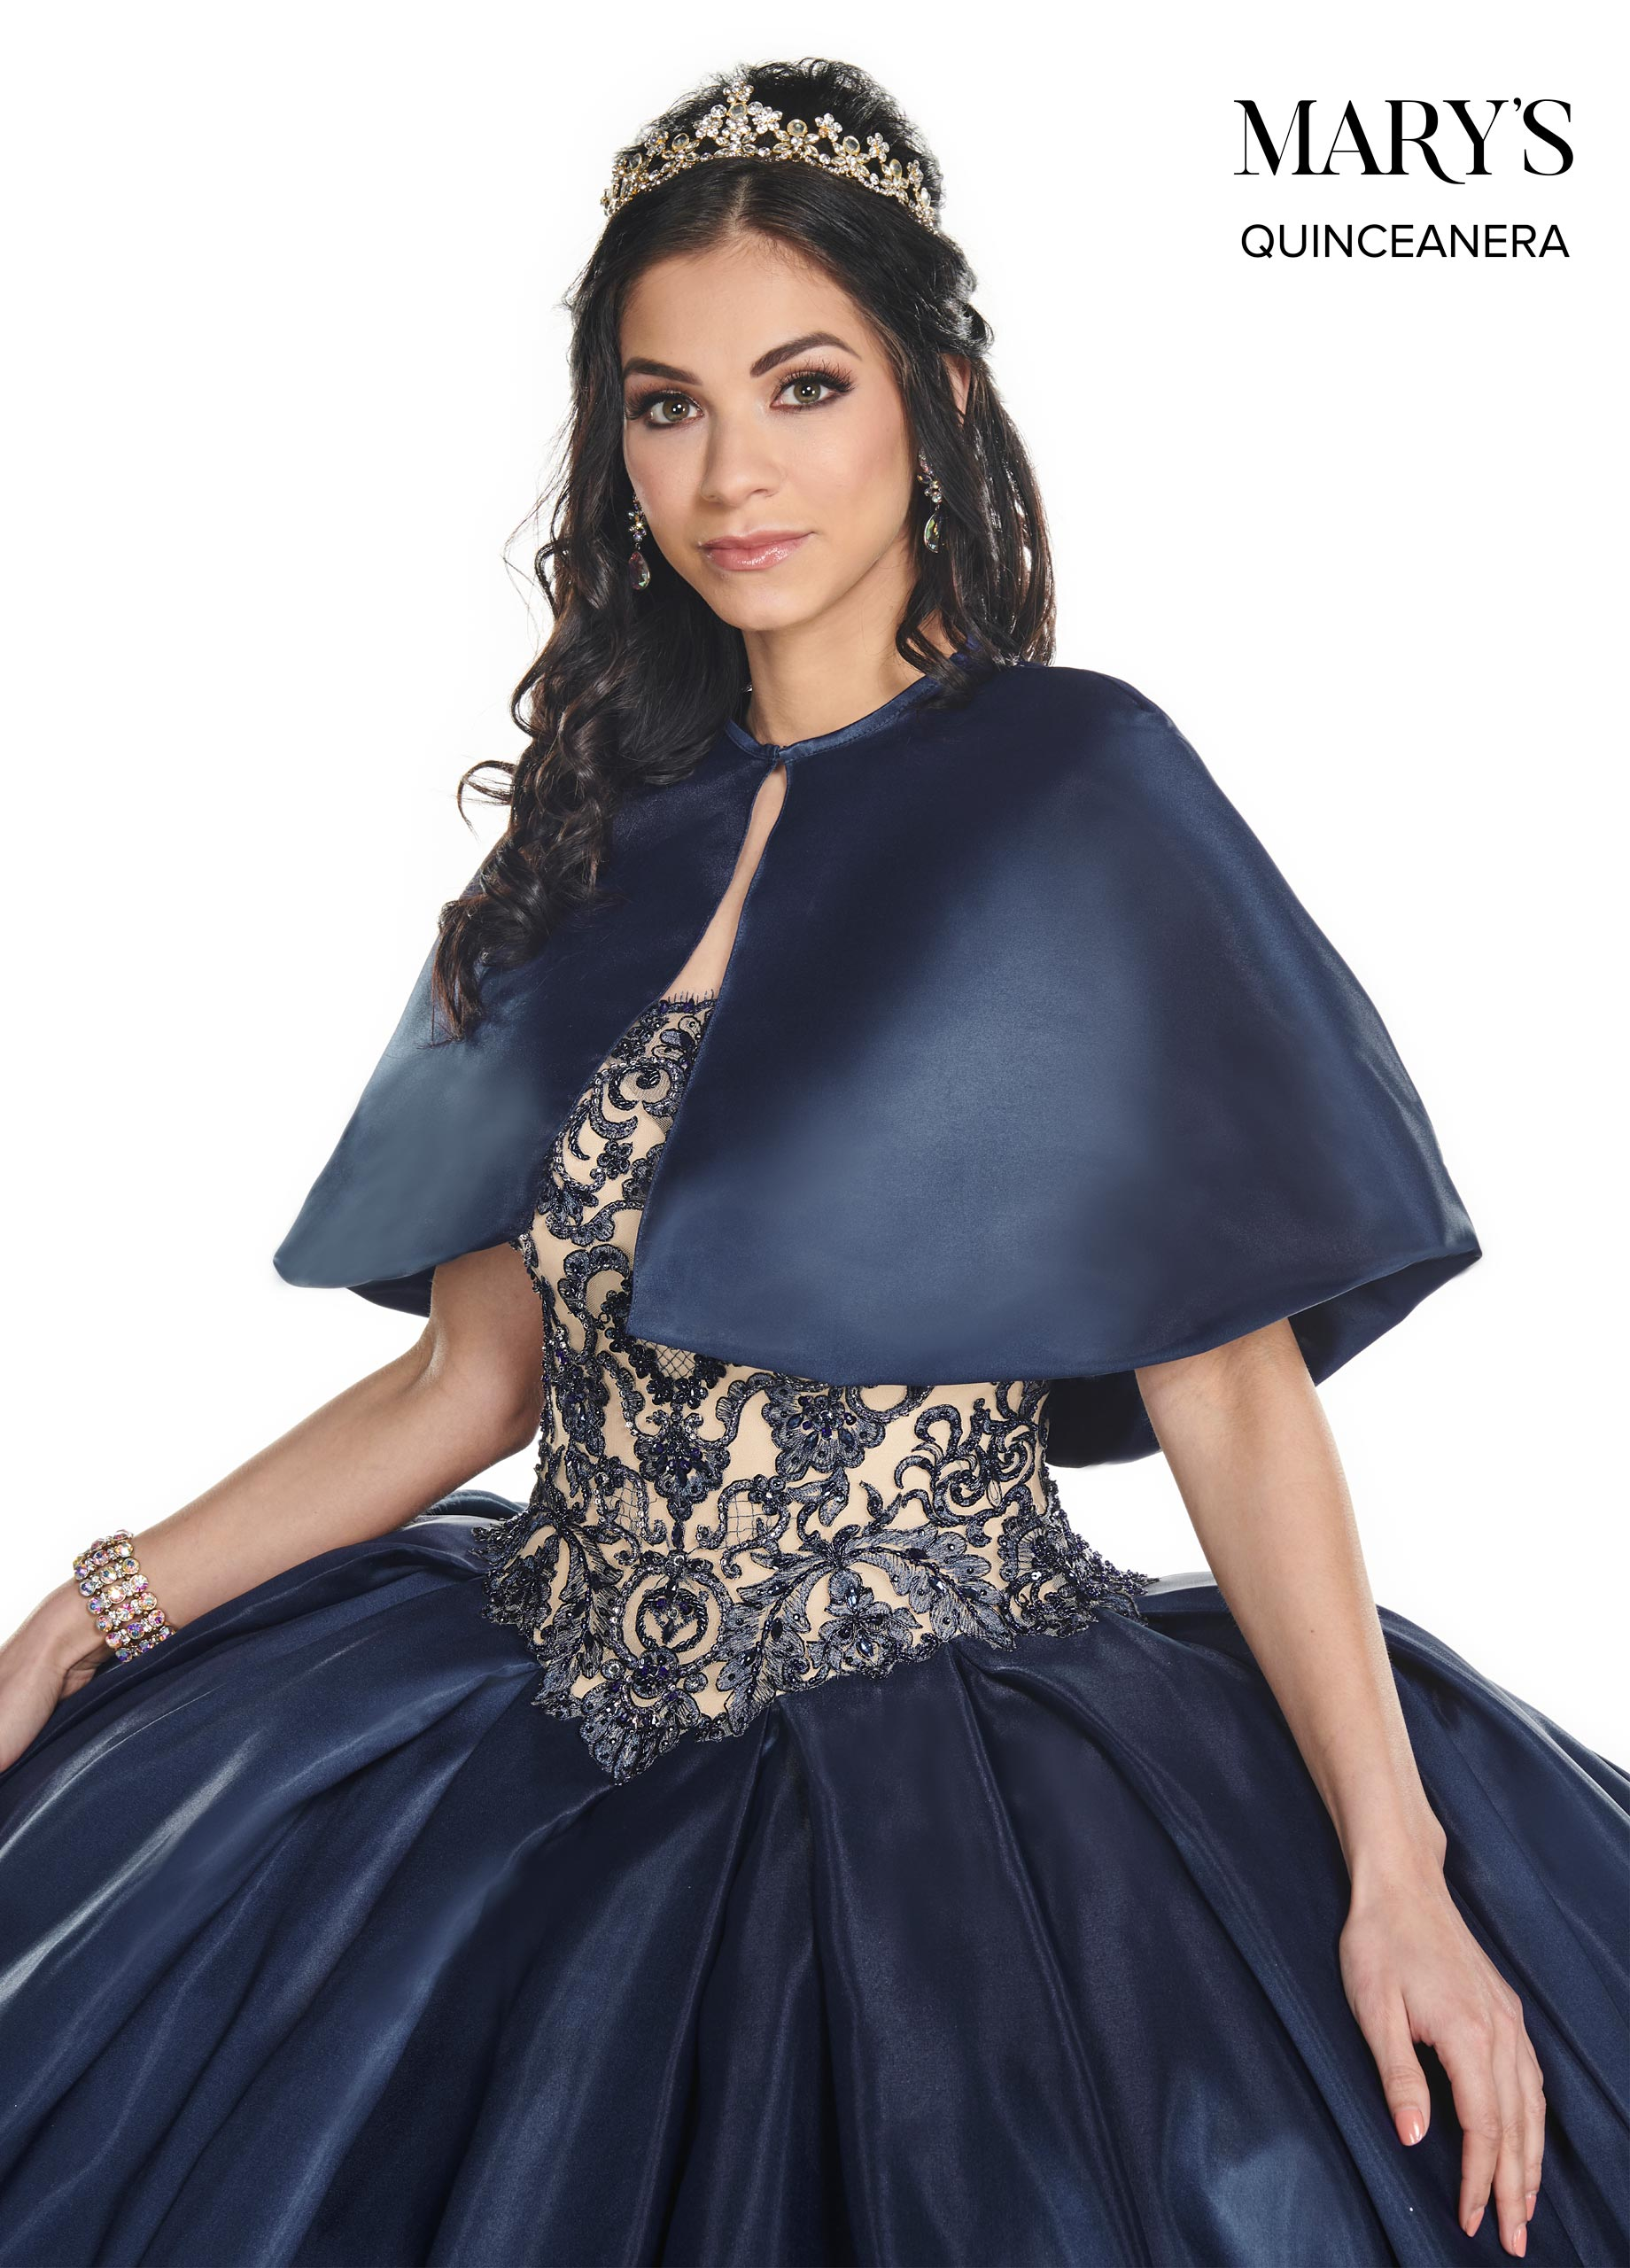 Marys Quinceanera Dresses | Mary's Quinceanera | Style - MQ2089